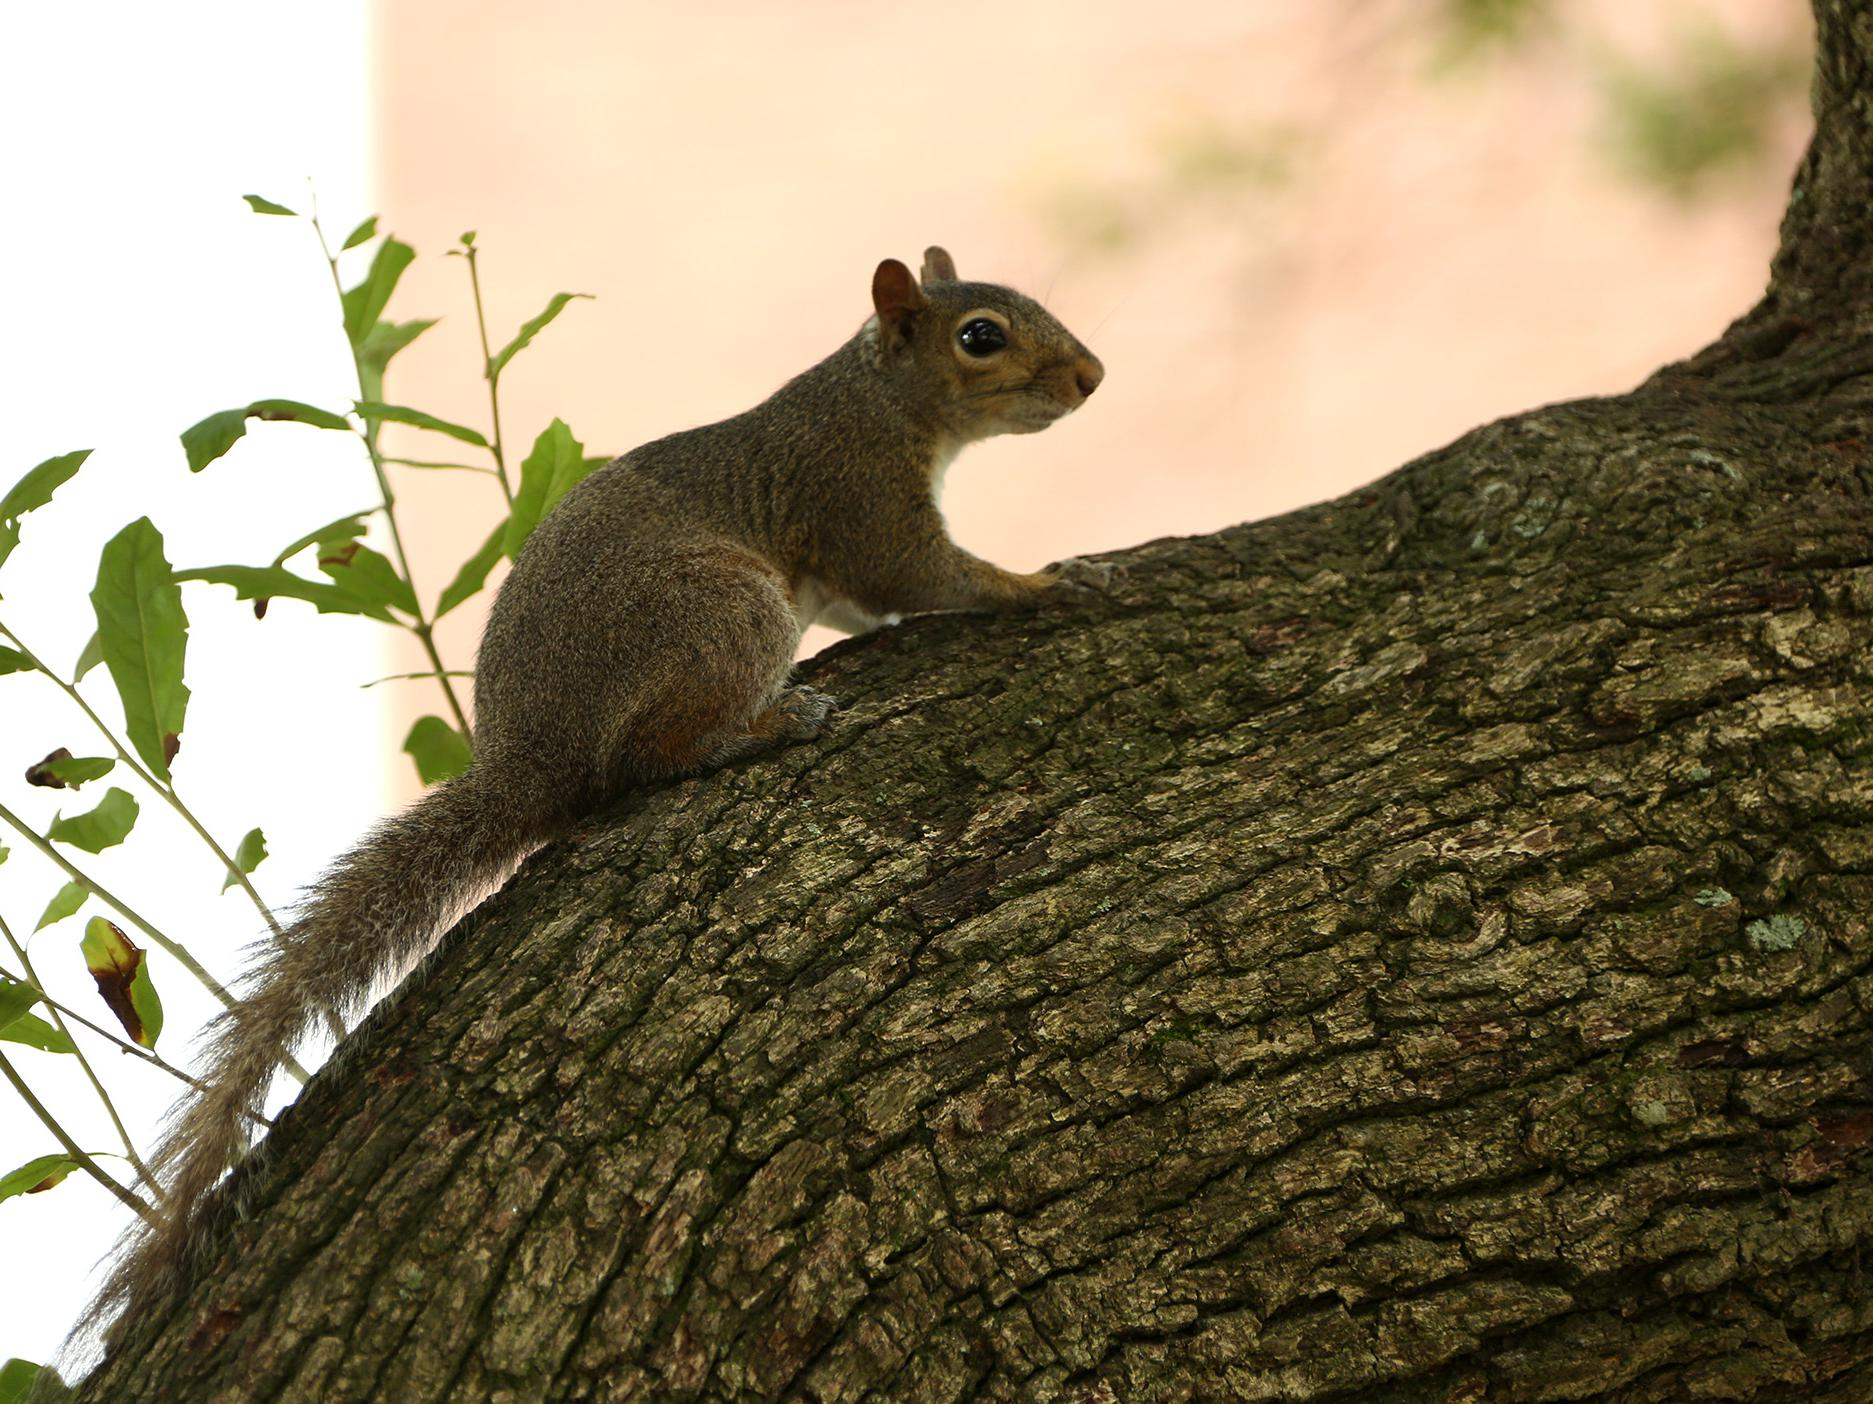 A gray squirrel pauses as it climbs a tree.